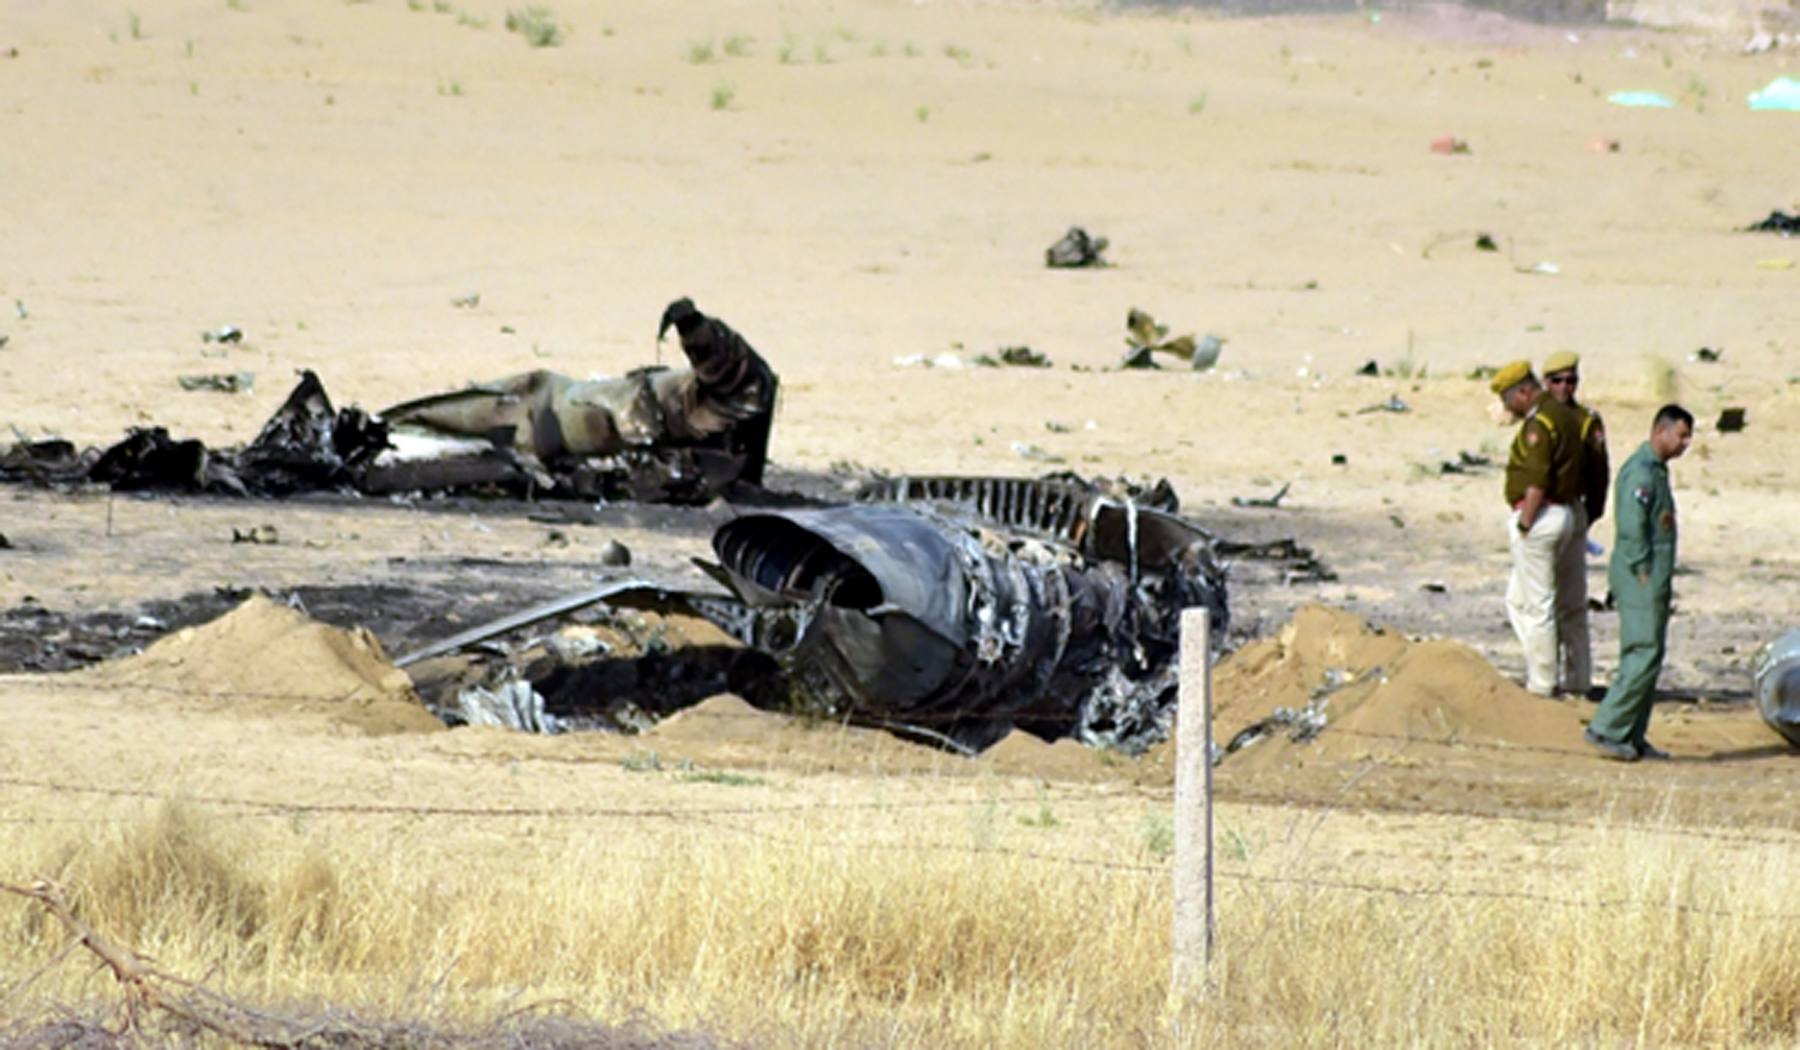 Bikaner: Debris of a MiG-21 fighter aircraft of the Indian Air Force (IAF) that crashed near Bikaner in Rajasthan on March 8, 2019. The pilot ejected safely. (Photo: IANS)